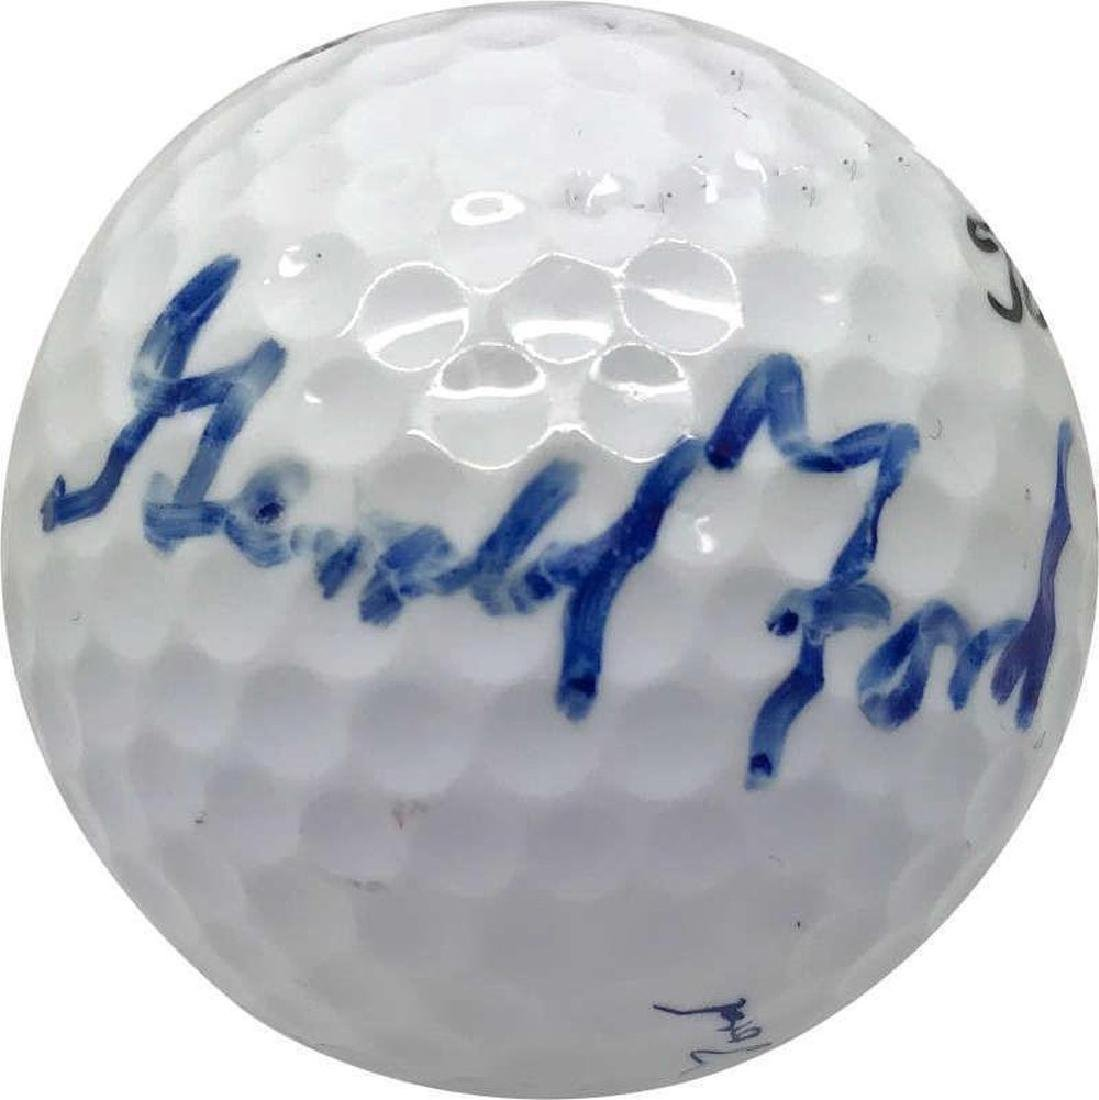 Gerald Ford Signed Golf Ball